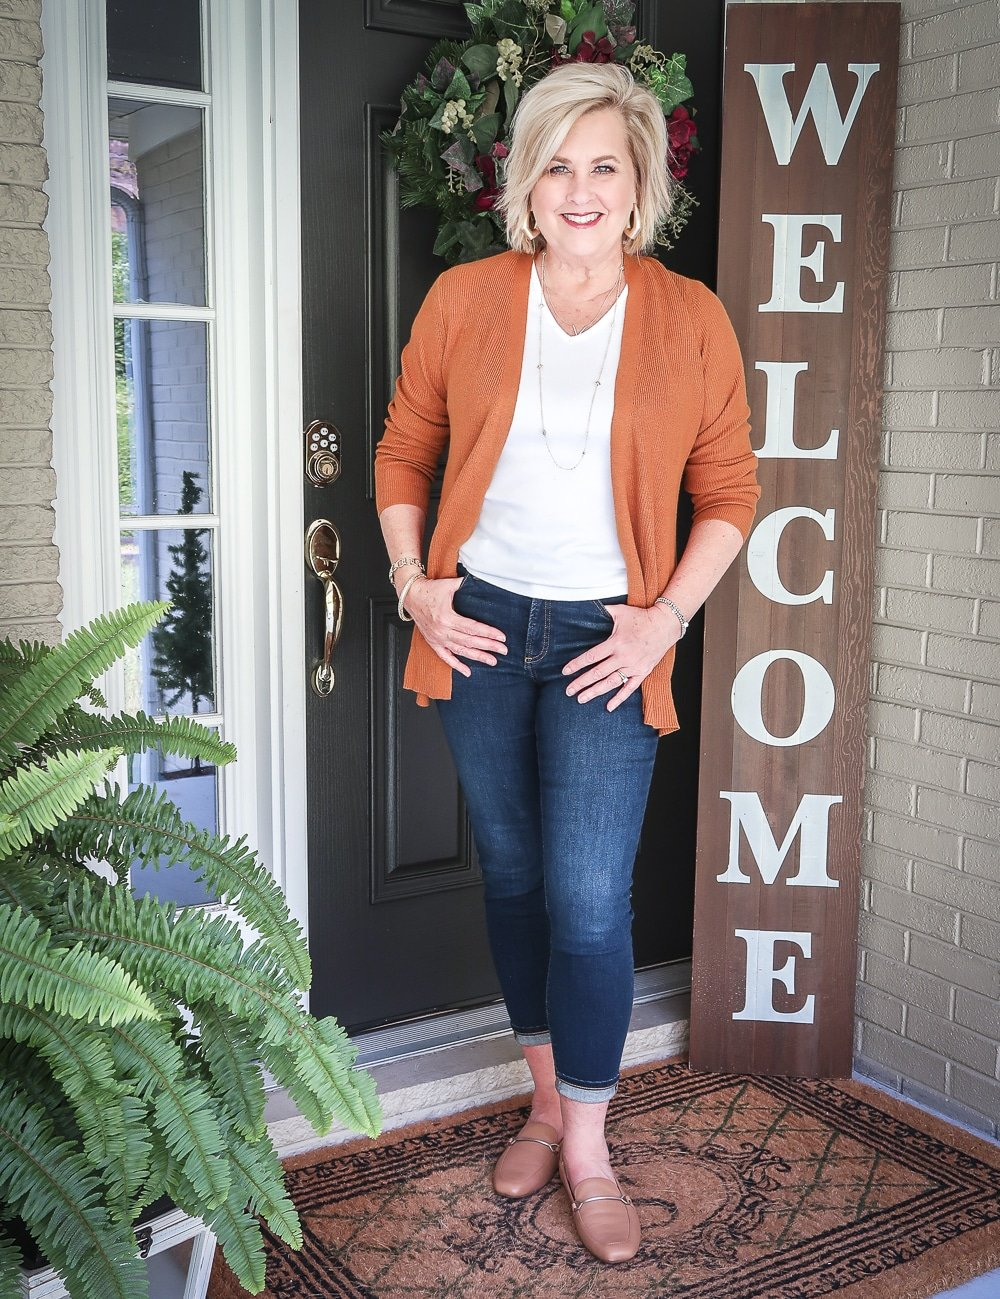 Fashion Blogger 50 Is Not Old is doing a Tuesday Try-On Session with Target and styling a rust cardigan, a white v-neck tee shirt, and dark jeans from Chico's